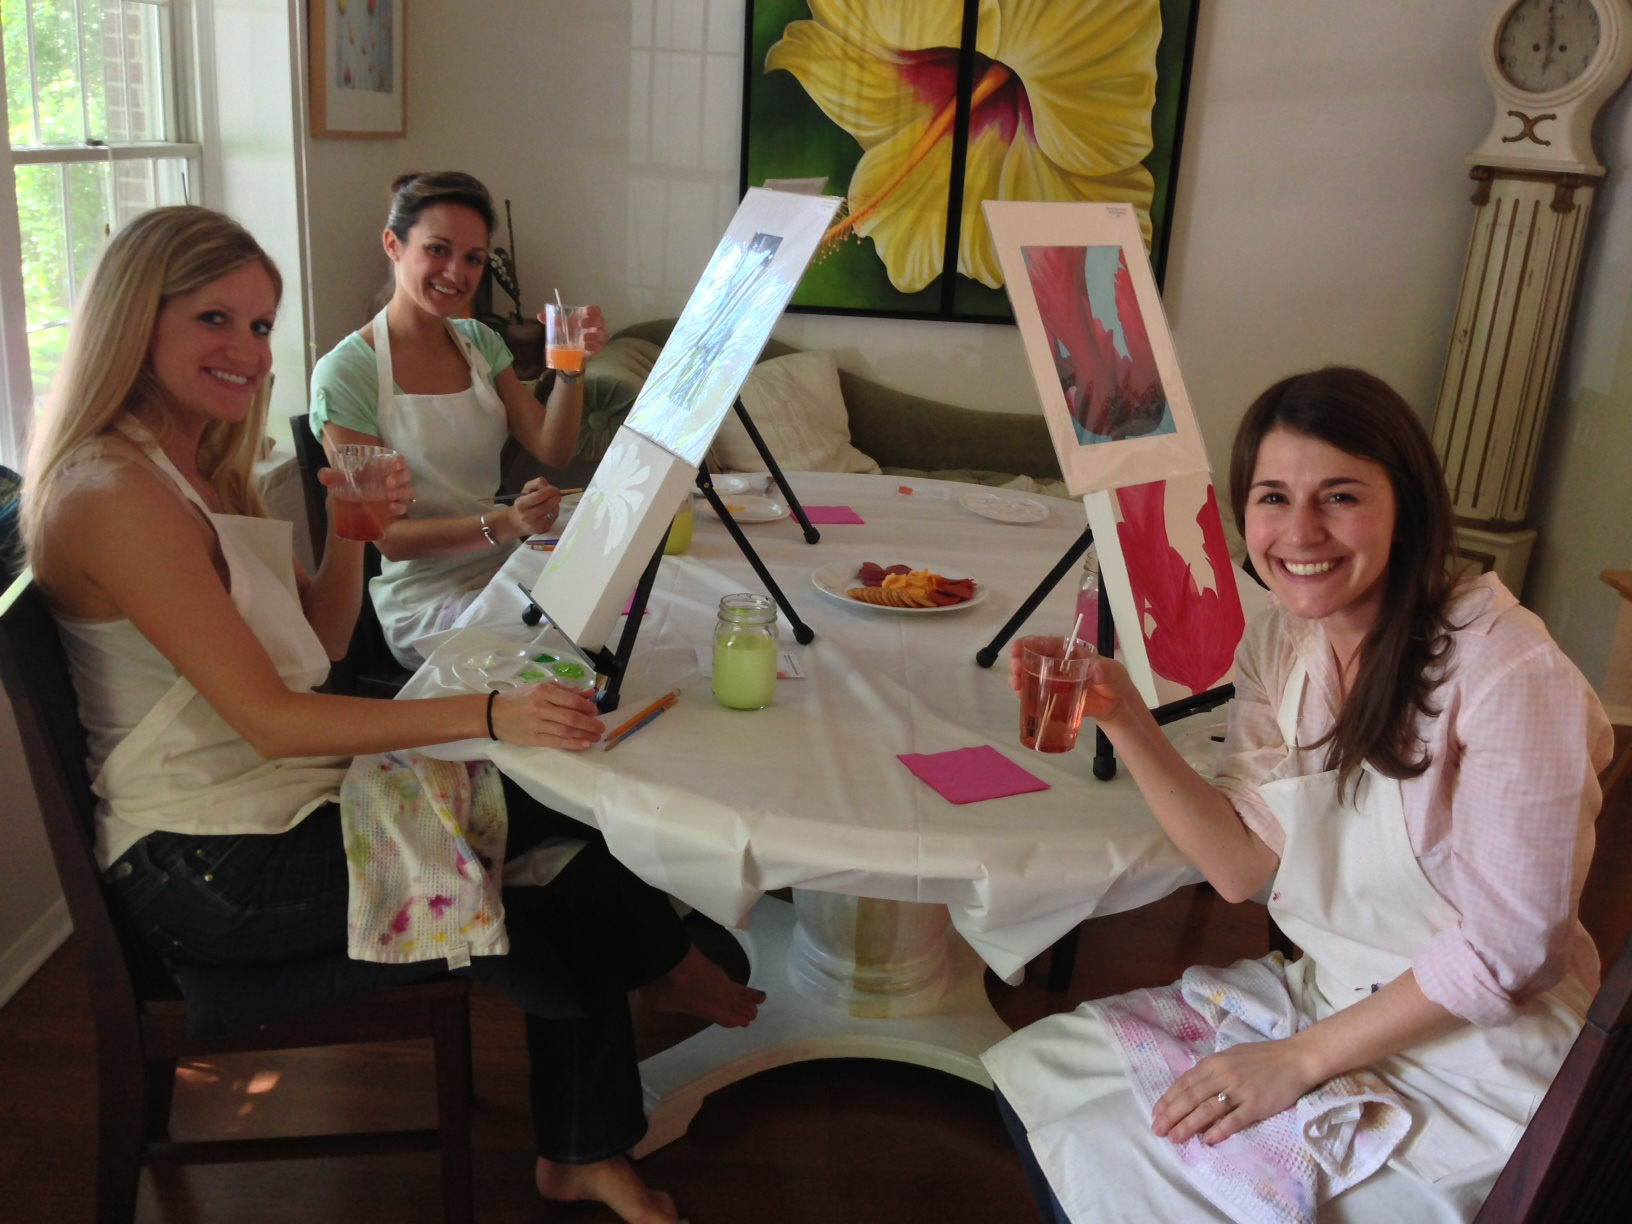 Cocktails & Canvases - Diana's private party